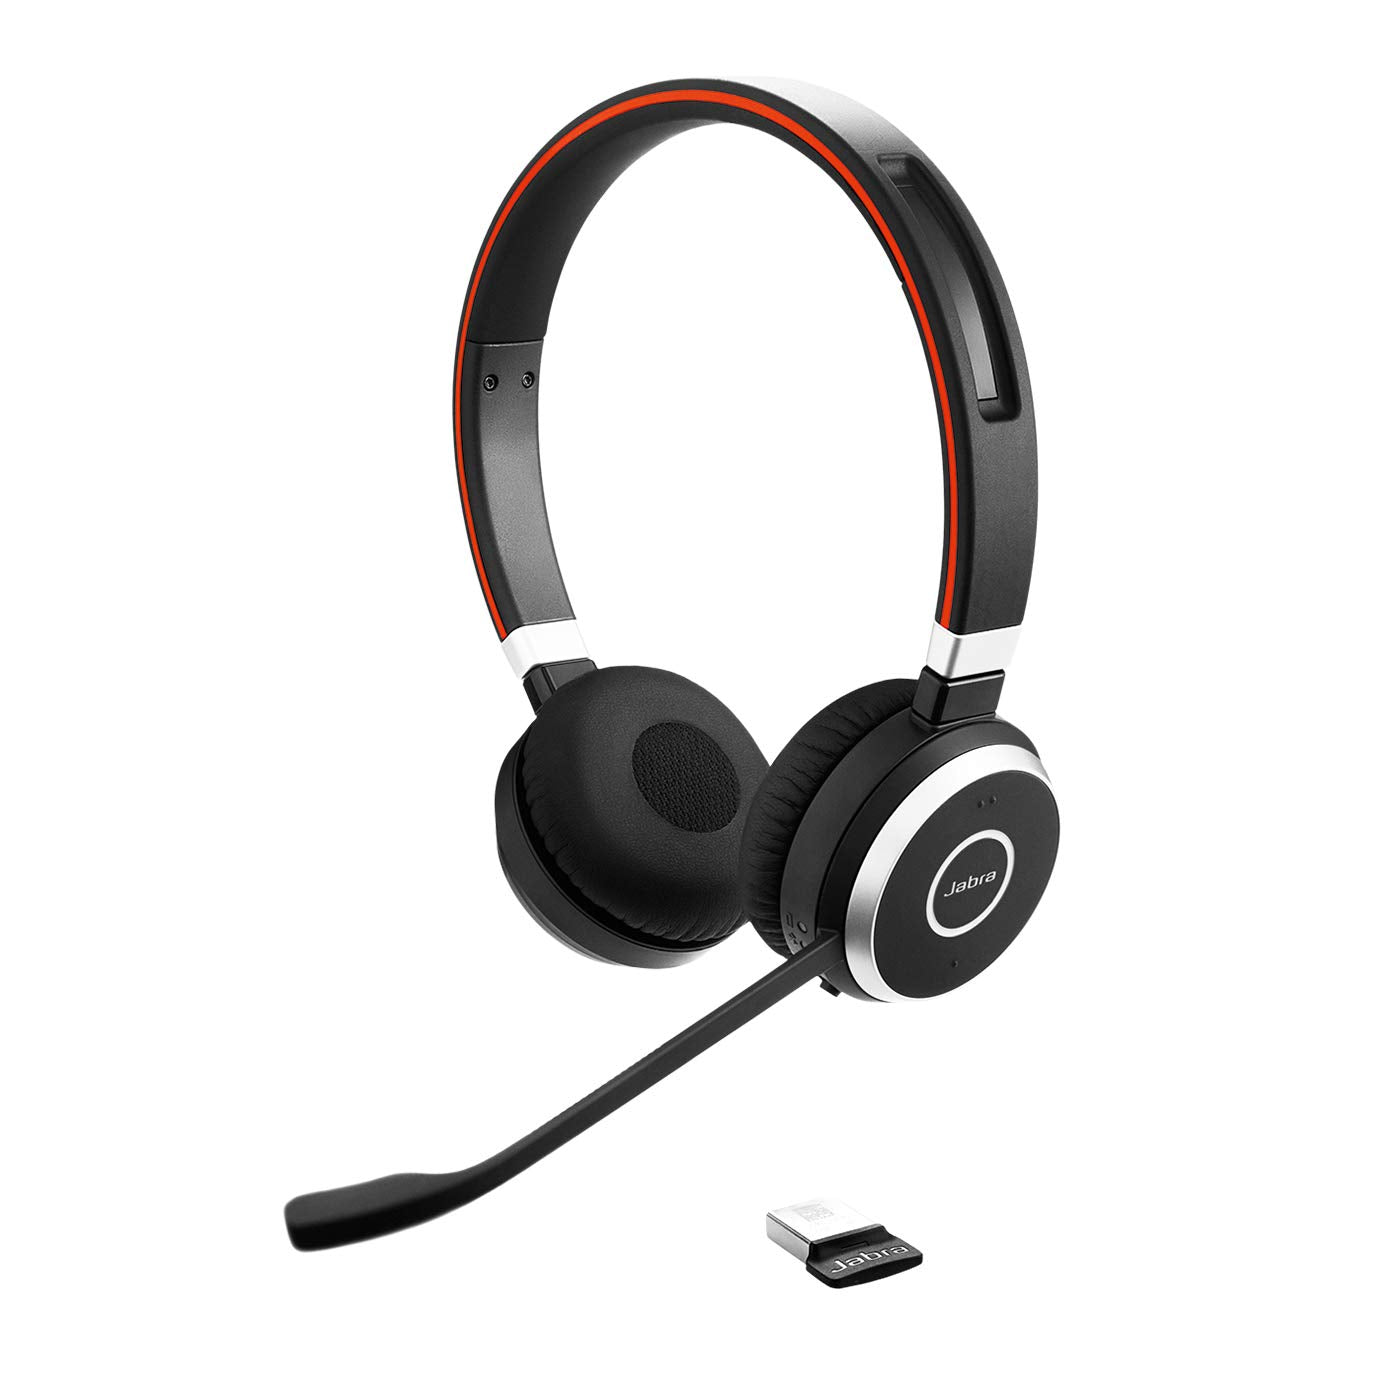 Jabra Evolve 65 UC Wireless Stereo On-Ear Headset